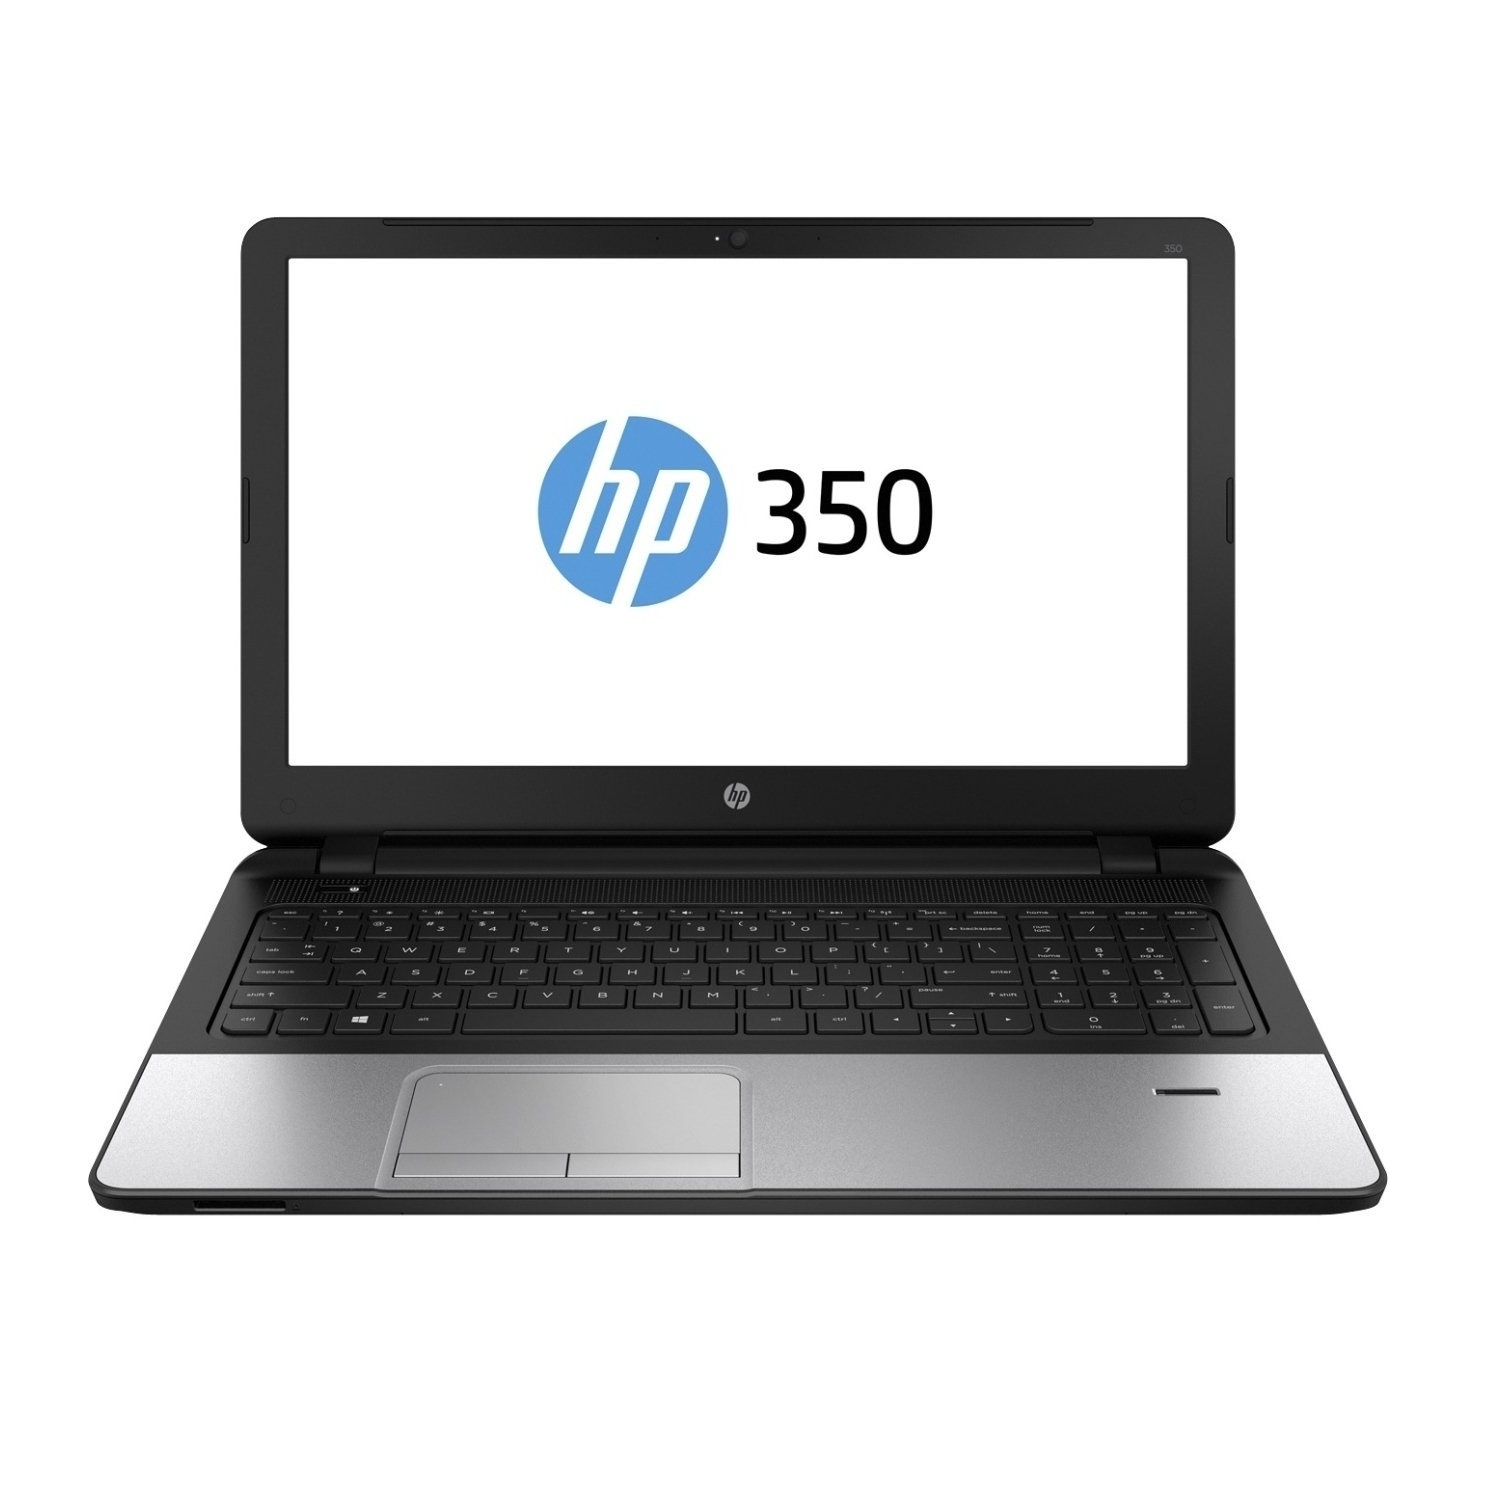 HP 350/Core i3-4005U (White)